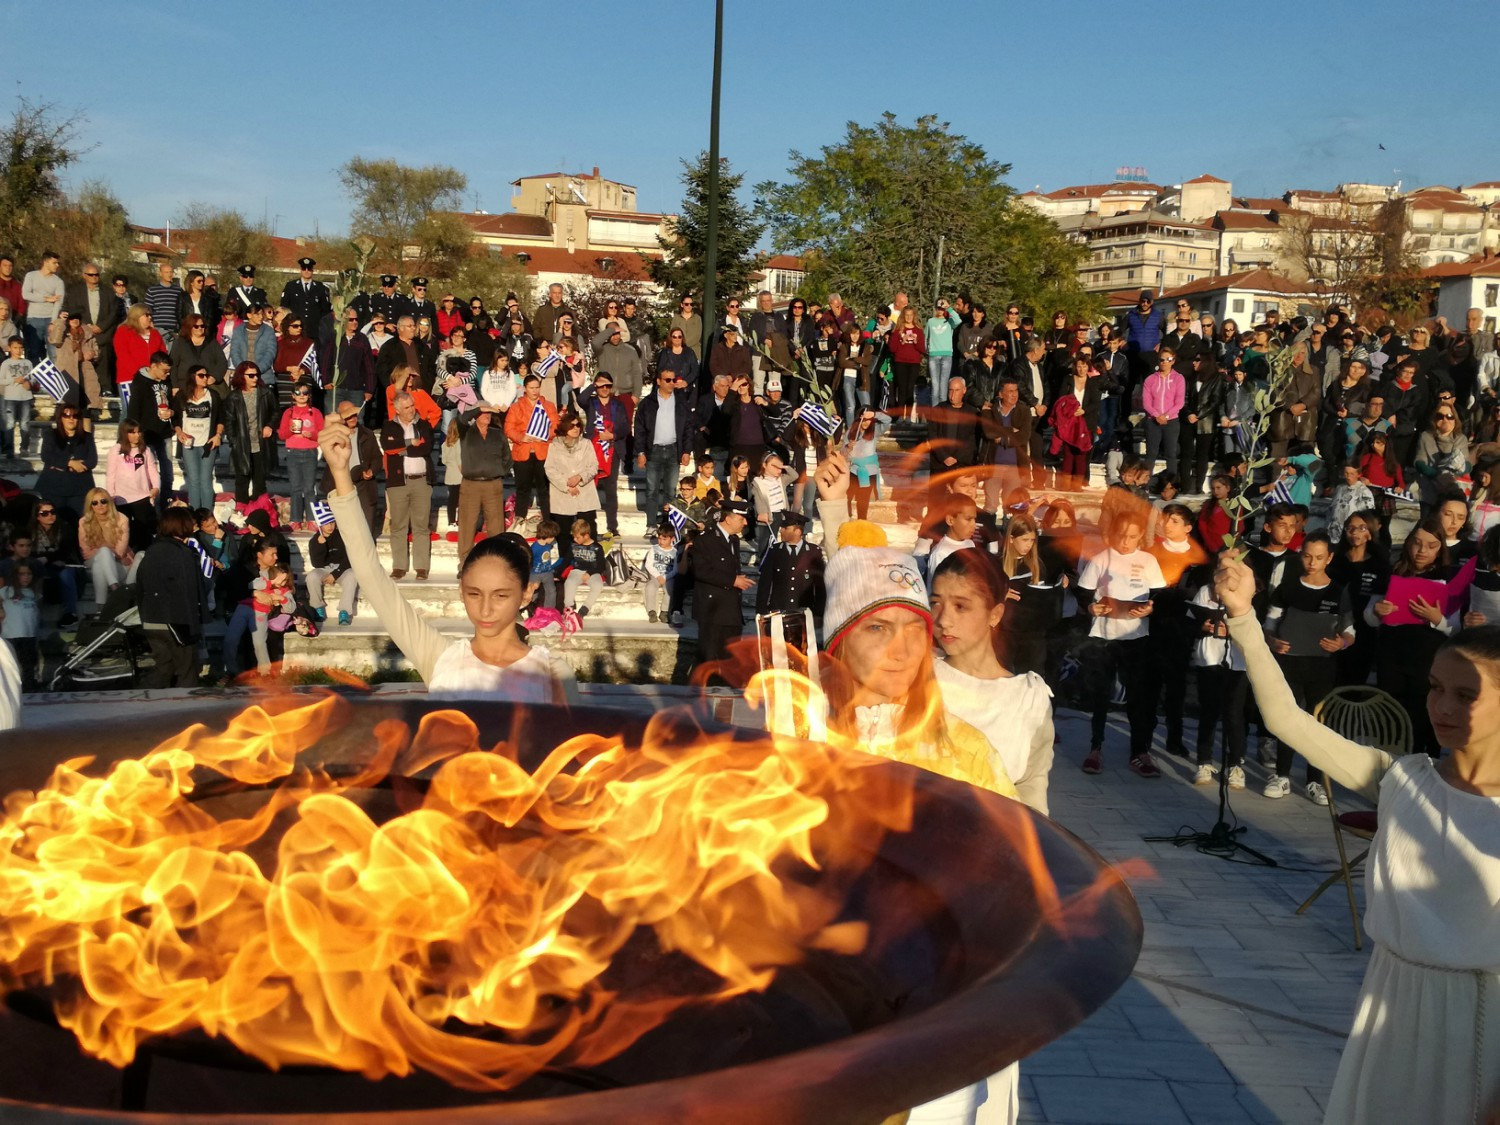 Big crowds have turned out in Greece to watch the Olympic Torch Relay for Pyeongchang 2018 ©HOC